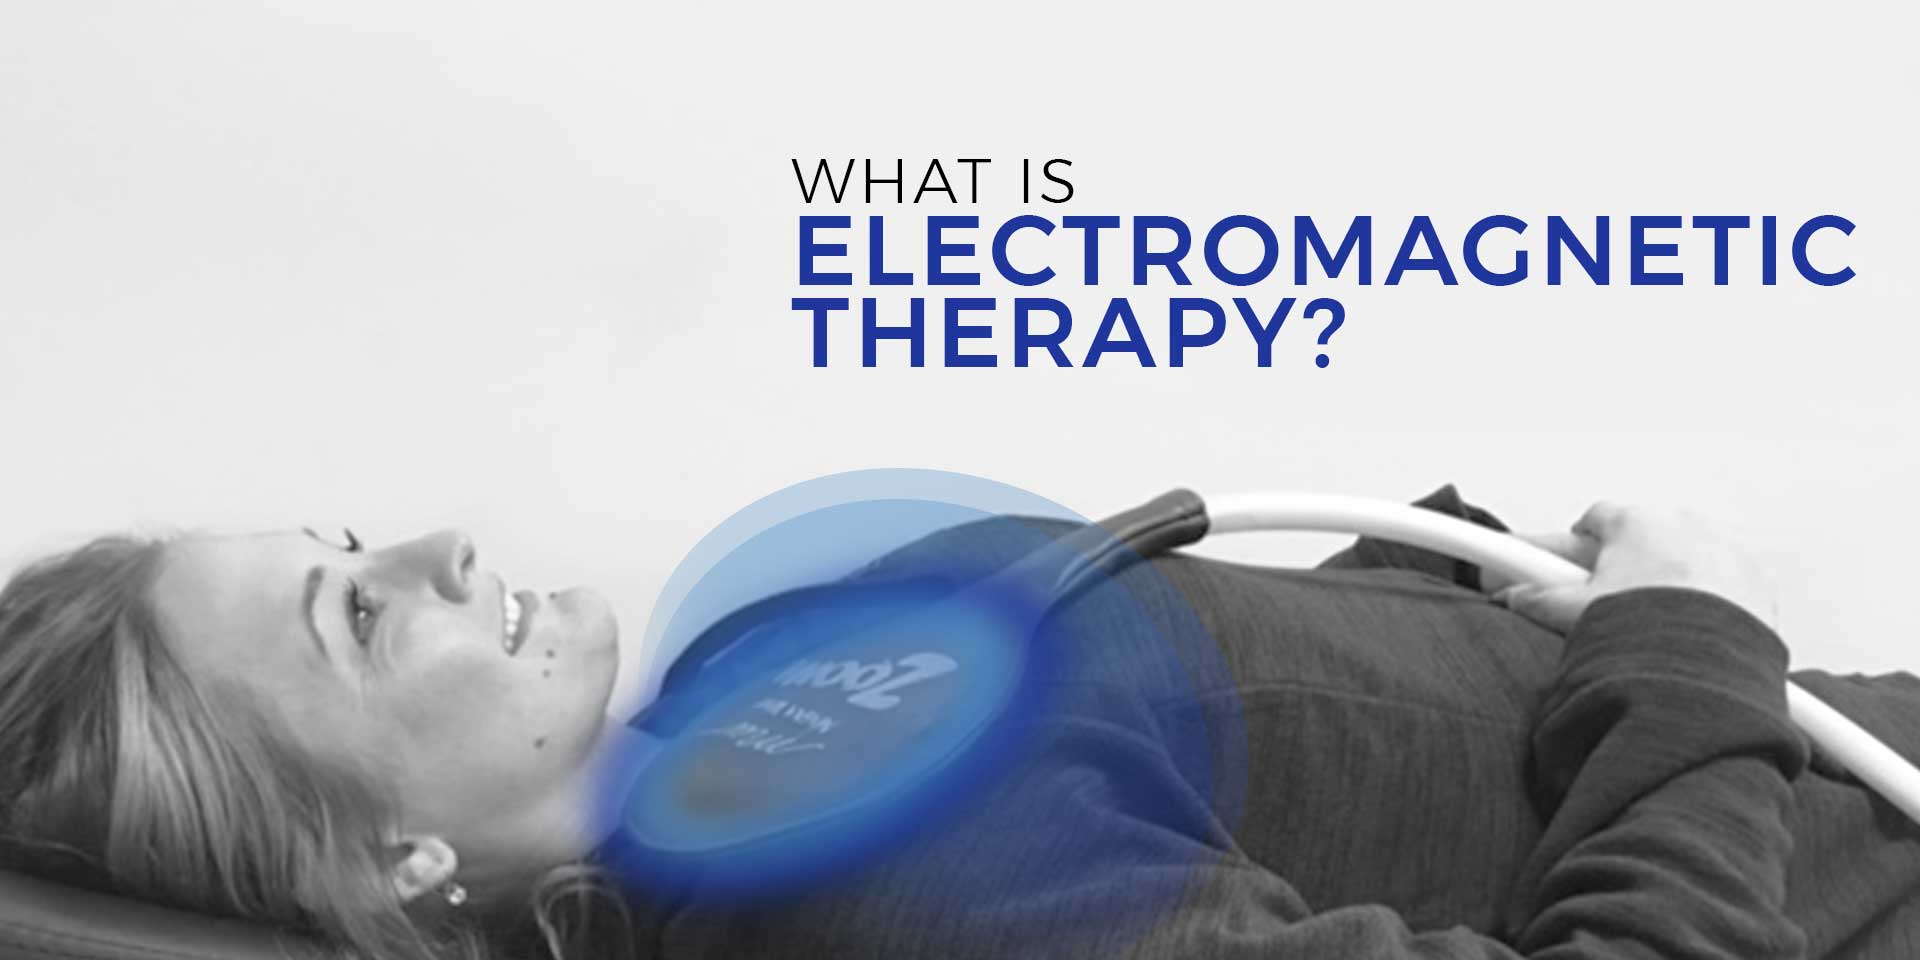 What is Electromagnetic Therapy?